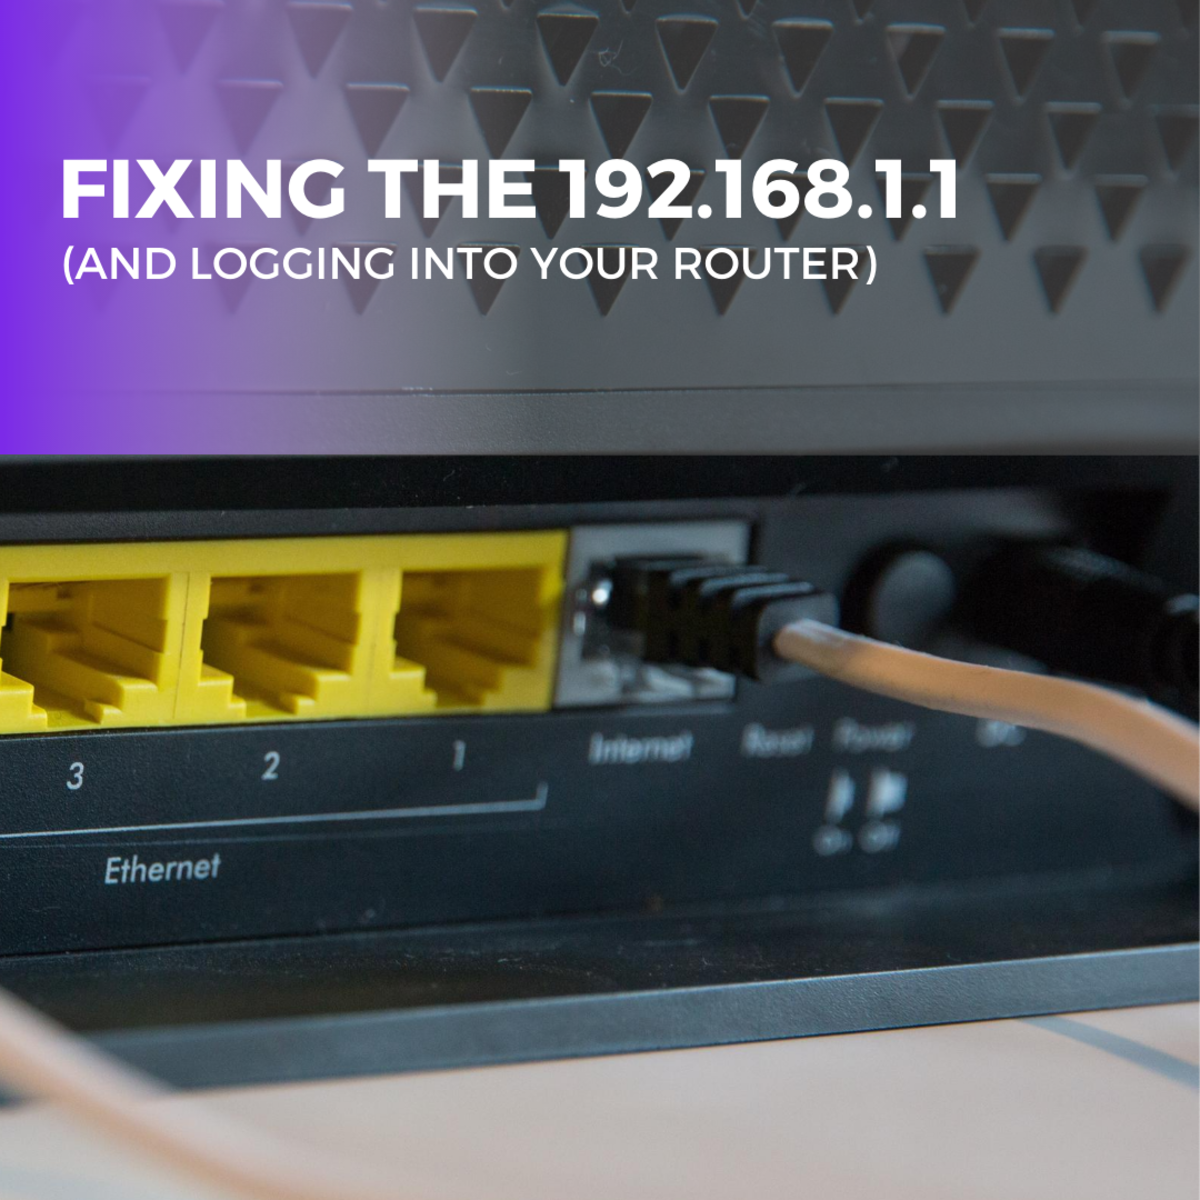 Fix Your IP Connection Issues for Good